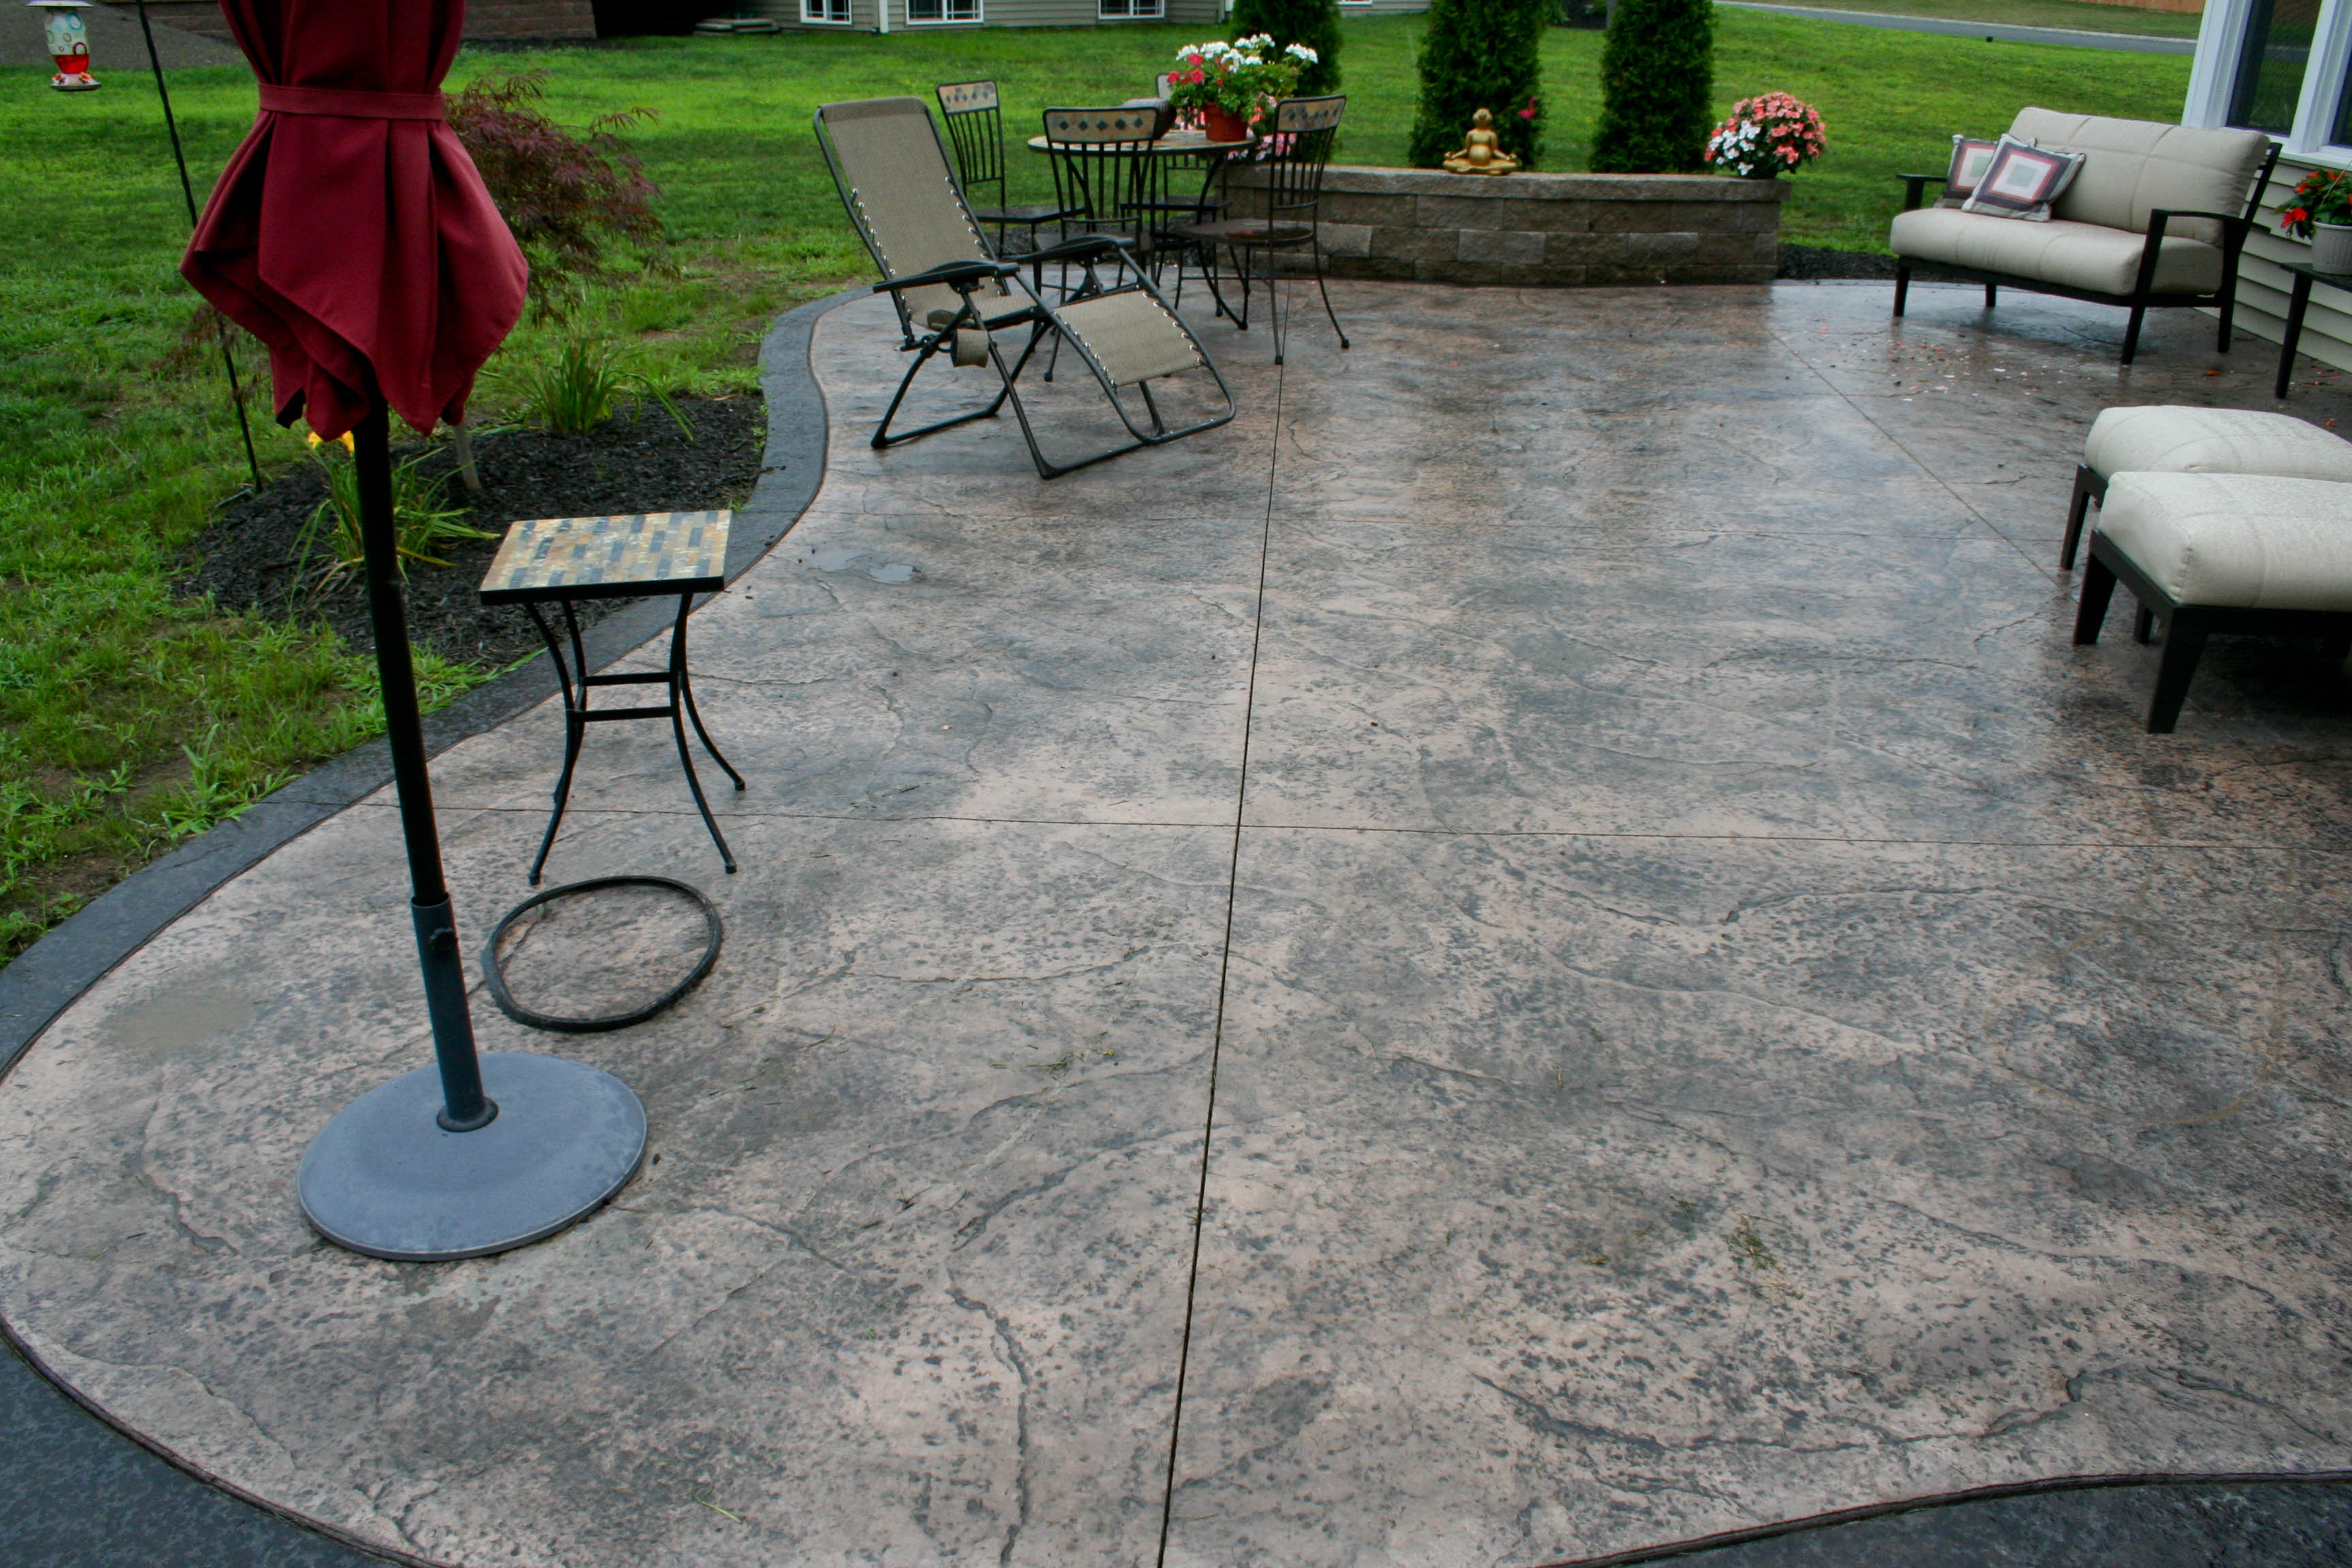 Patio floor design ideas stamped concrete designs for Stamped concrete patterns flooring options design with stairs with backyard patio wrought iron furniture